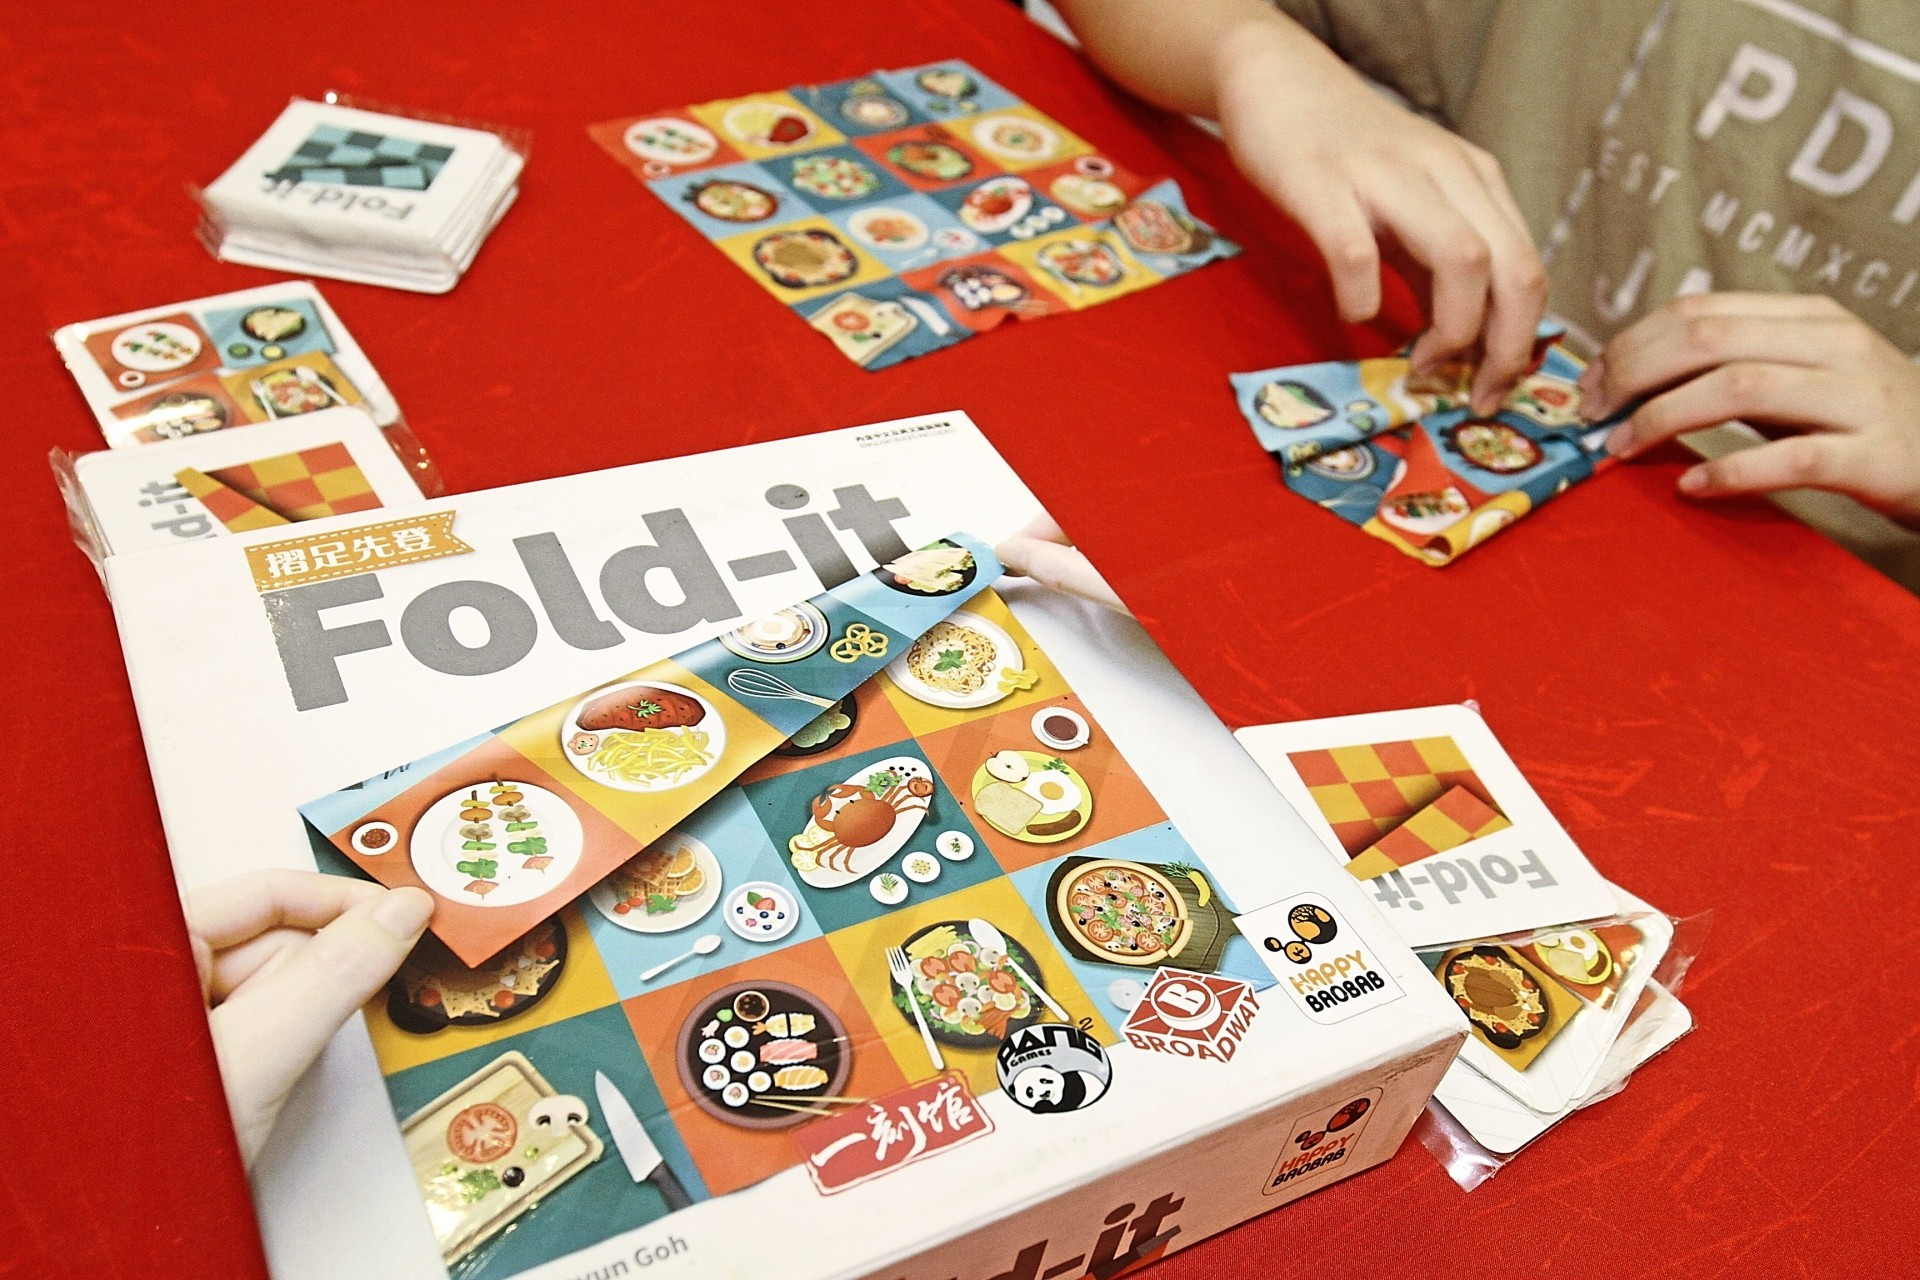 A closeup of a tabletop game